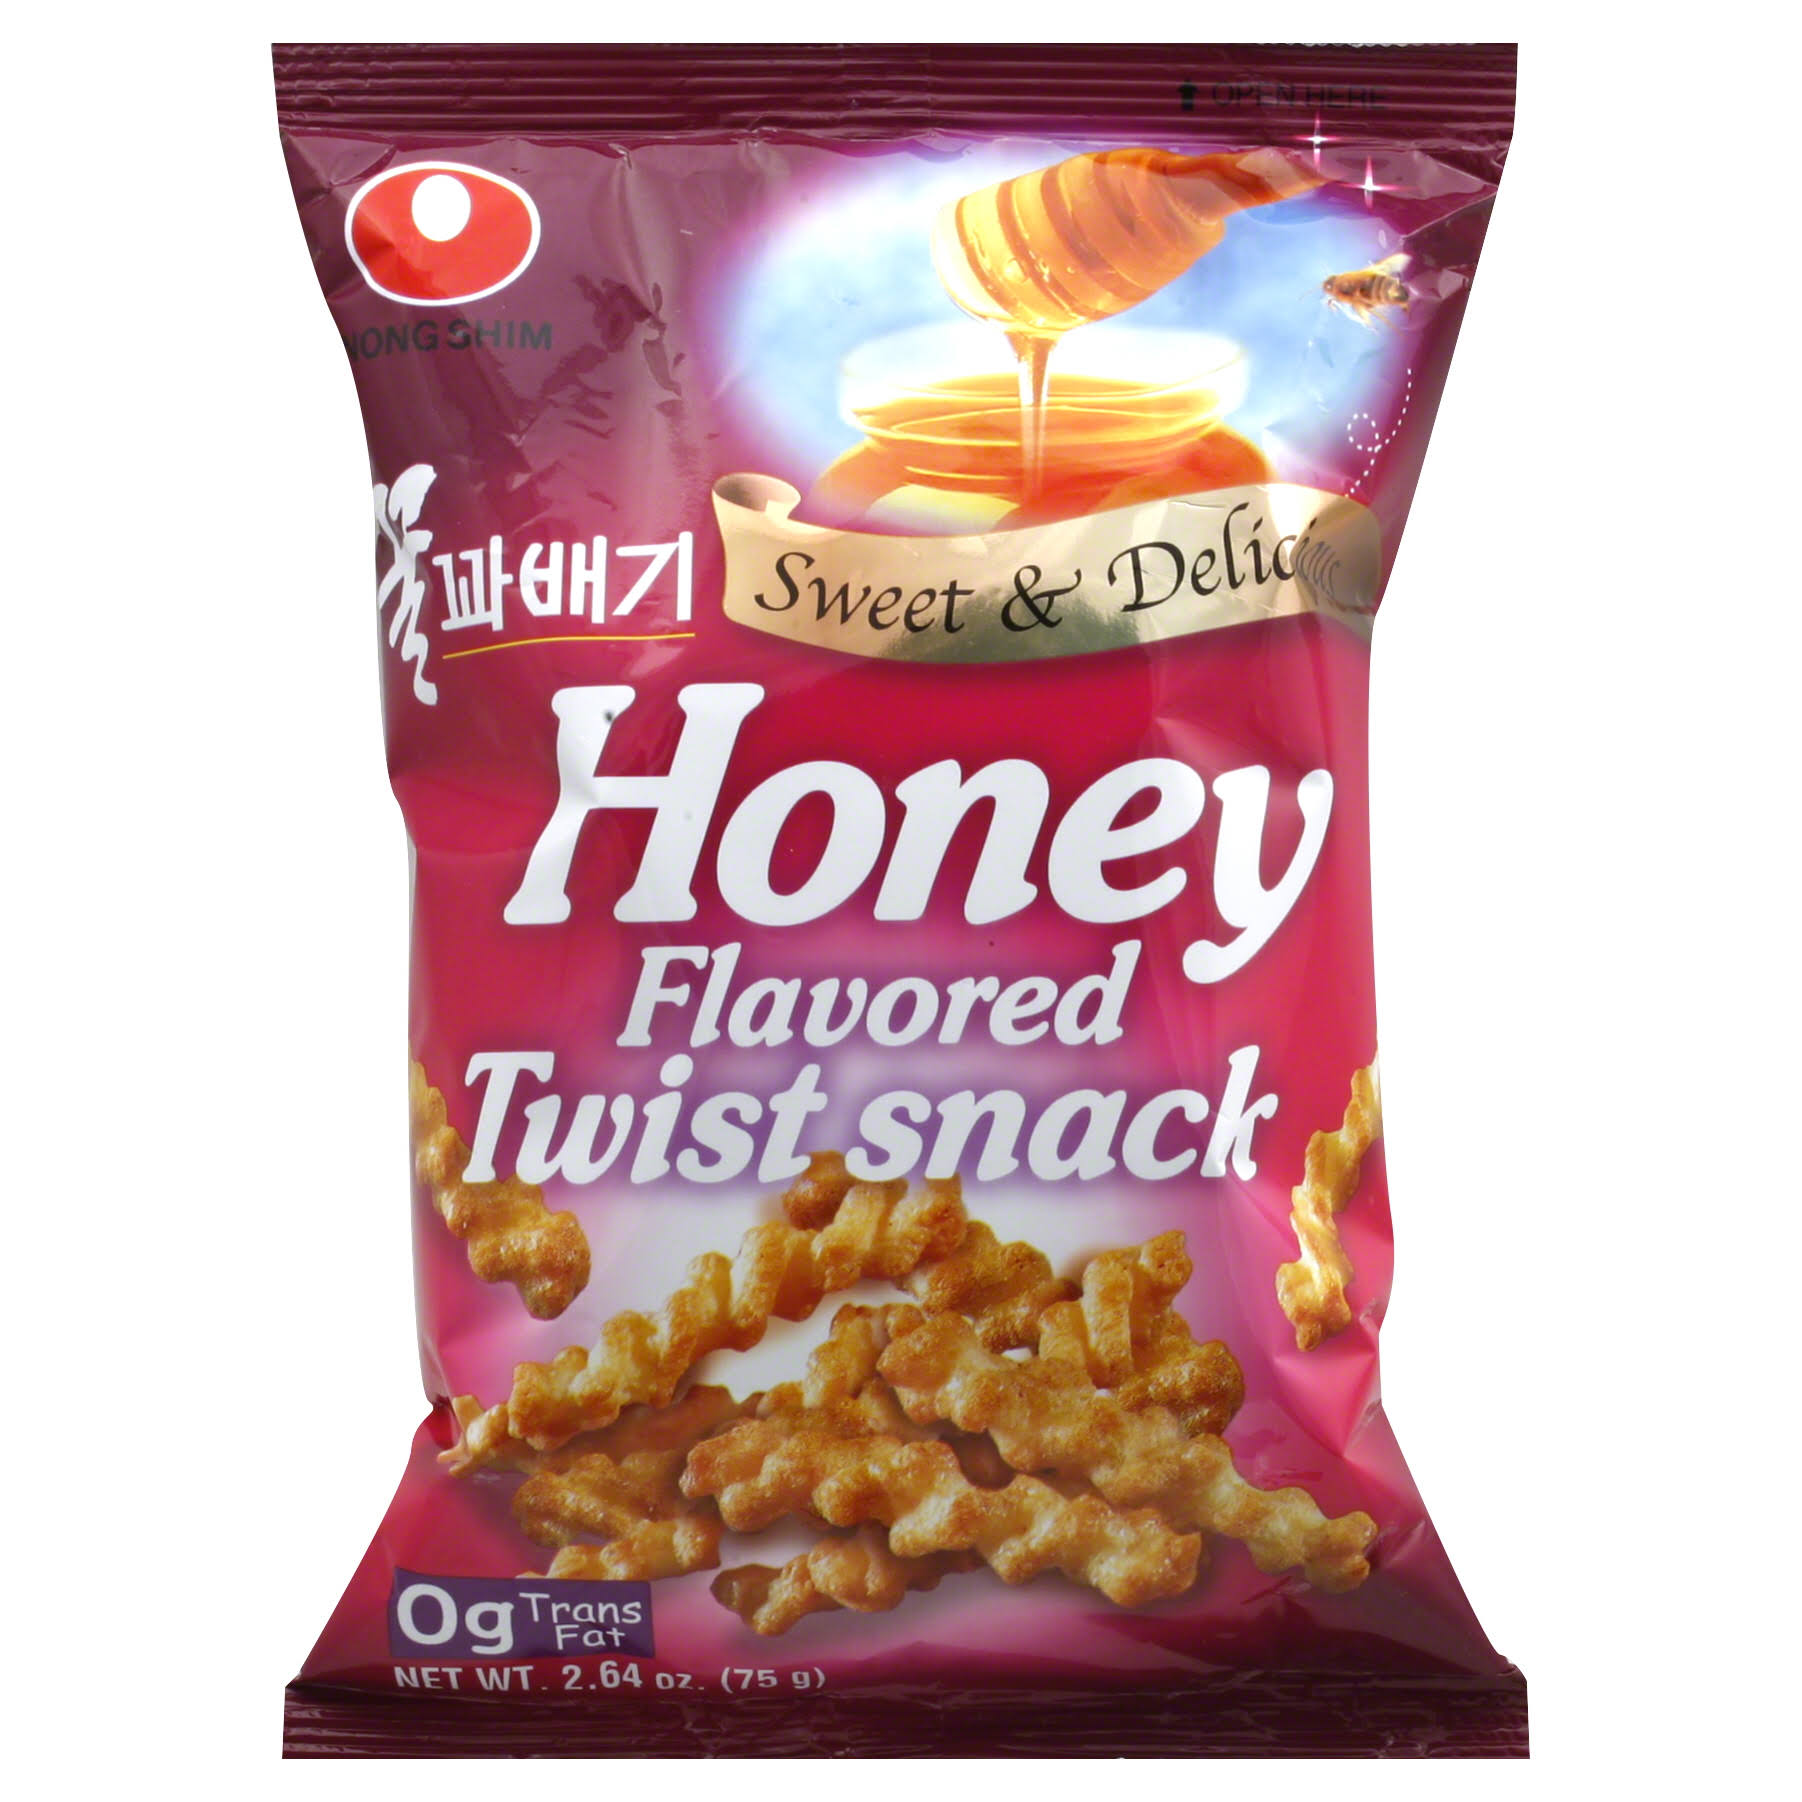 Nong Shim Twist Snack - Honey, 2.64oz